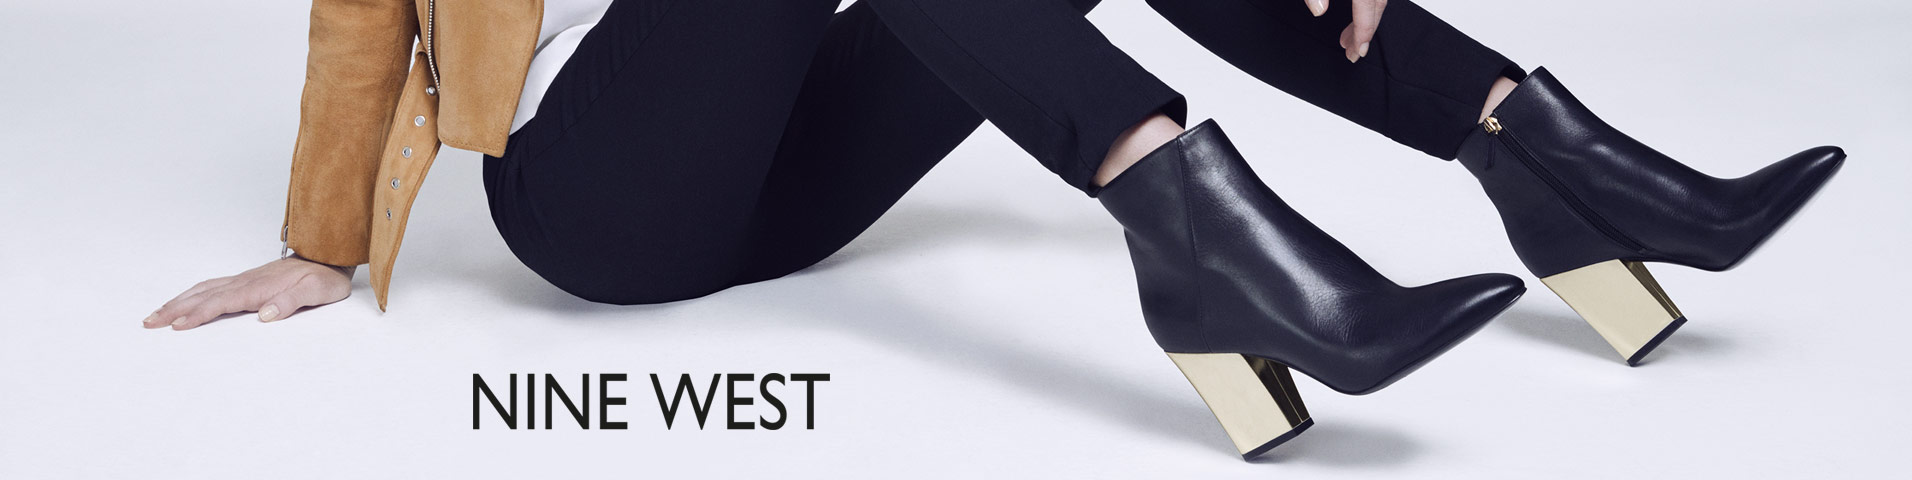 Nine West Coupons